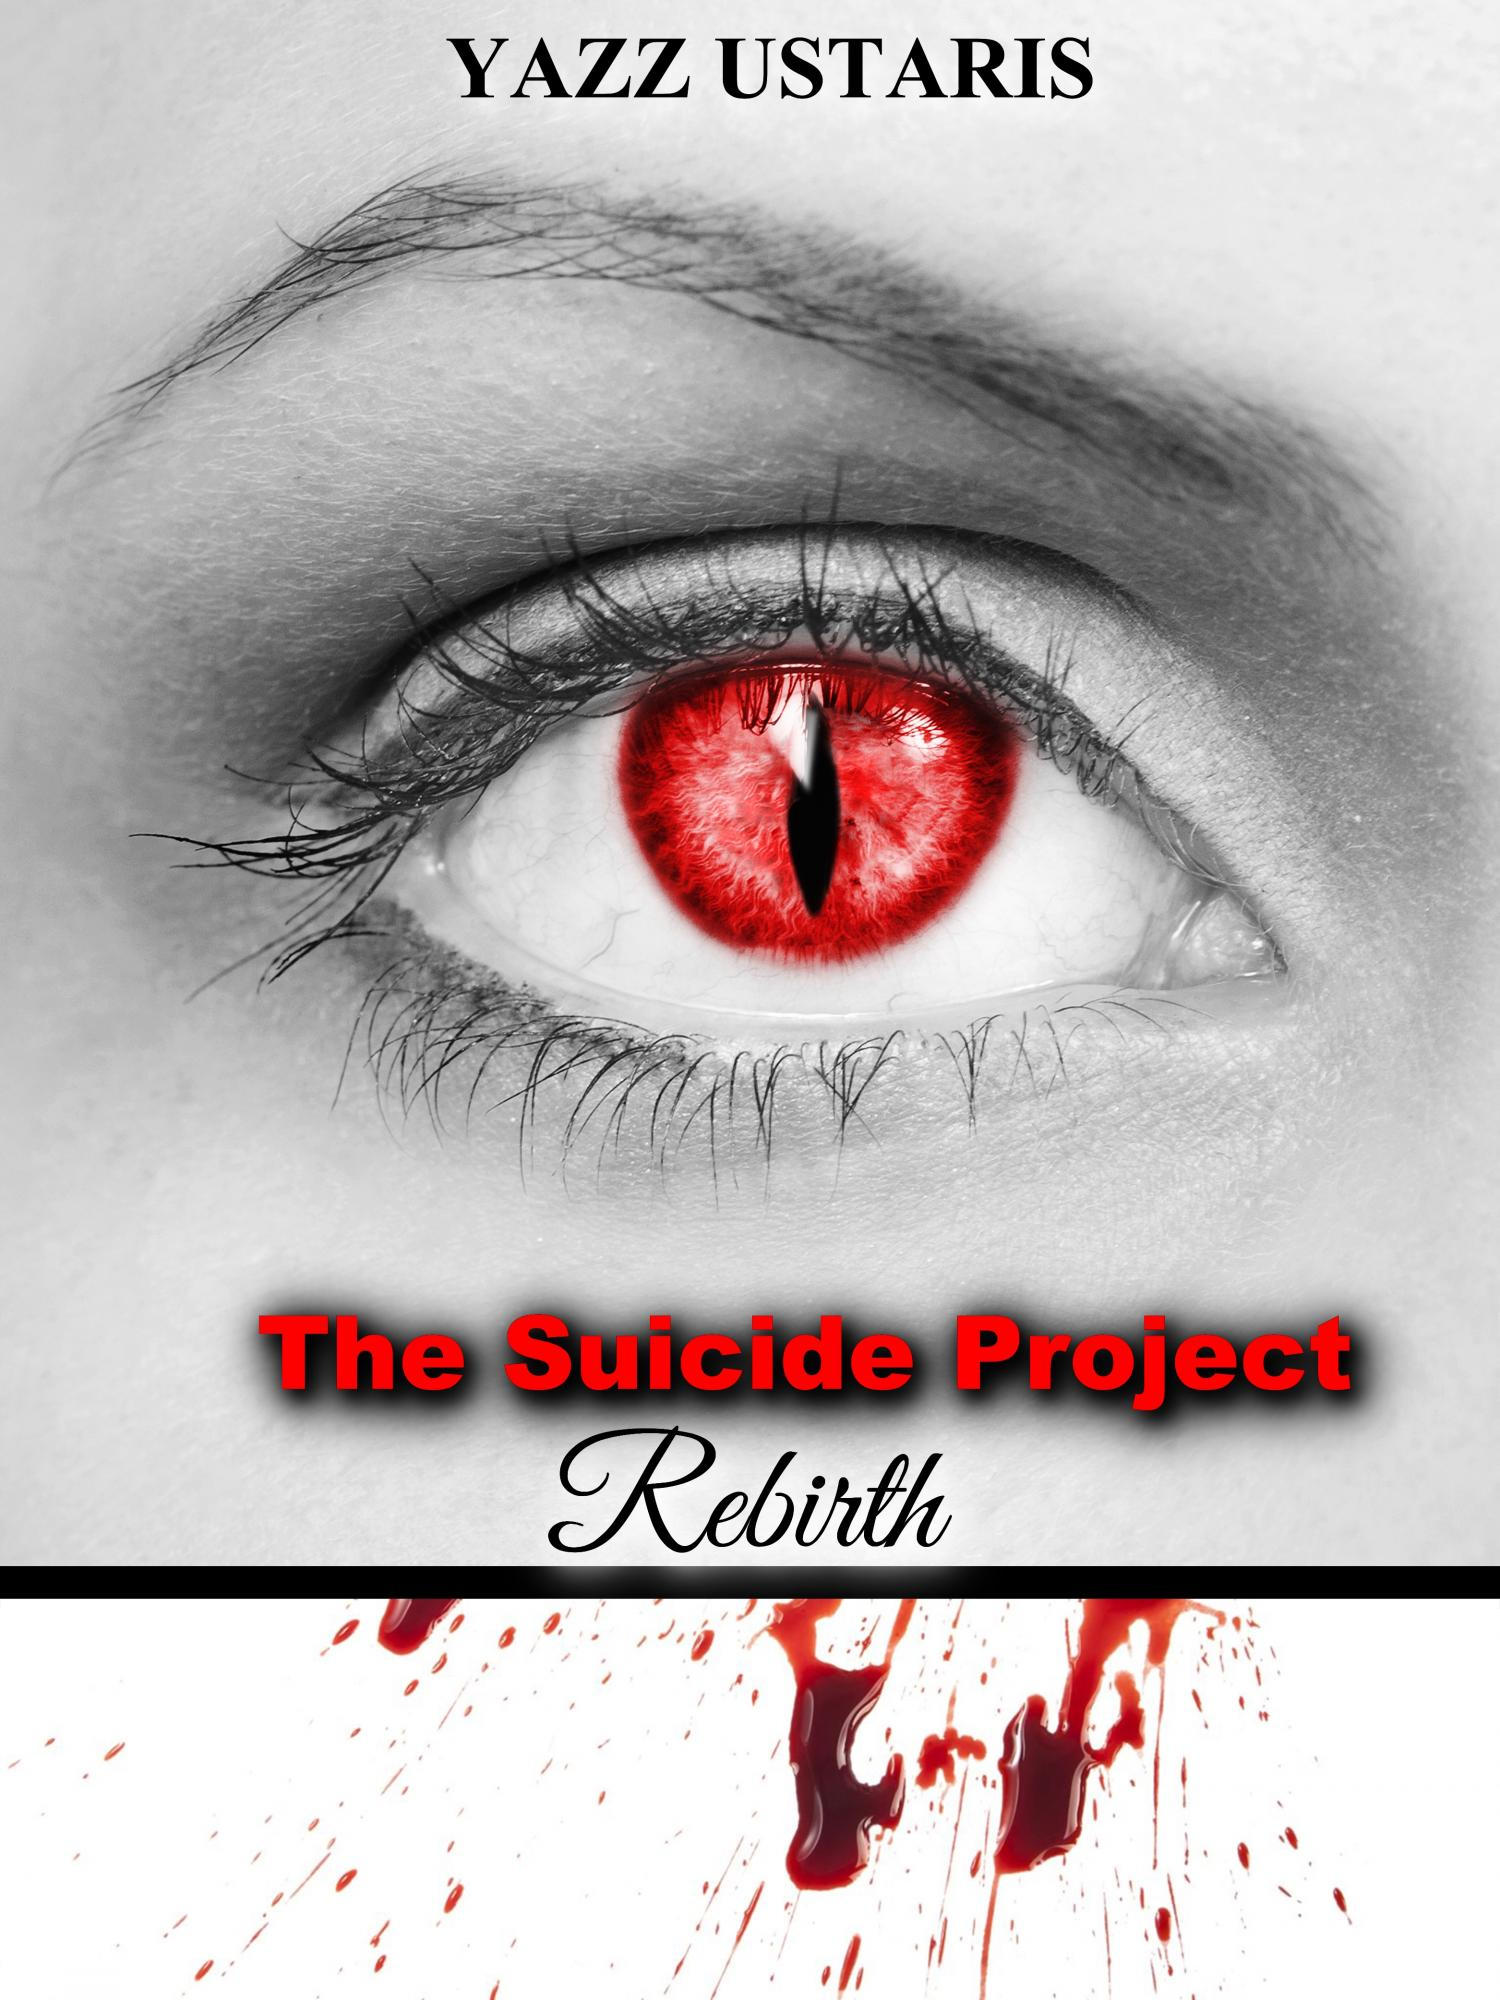 The Suicide Project: Rebirth